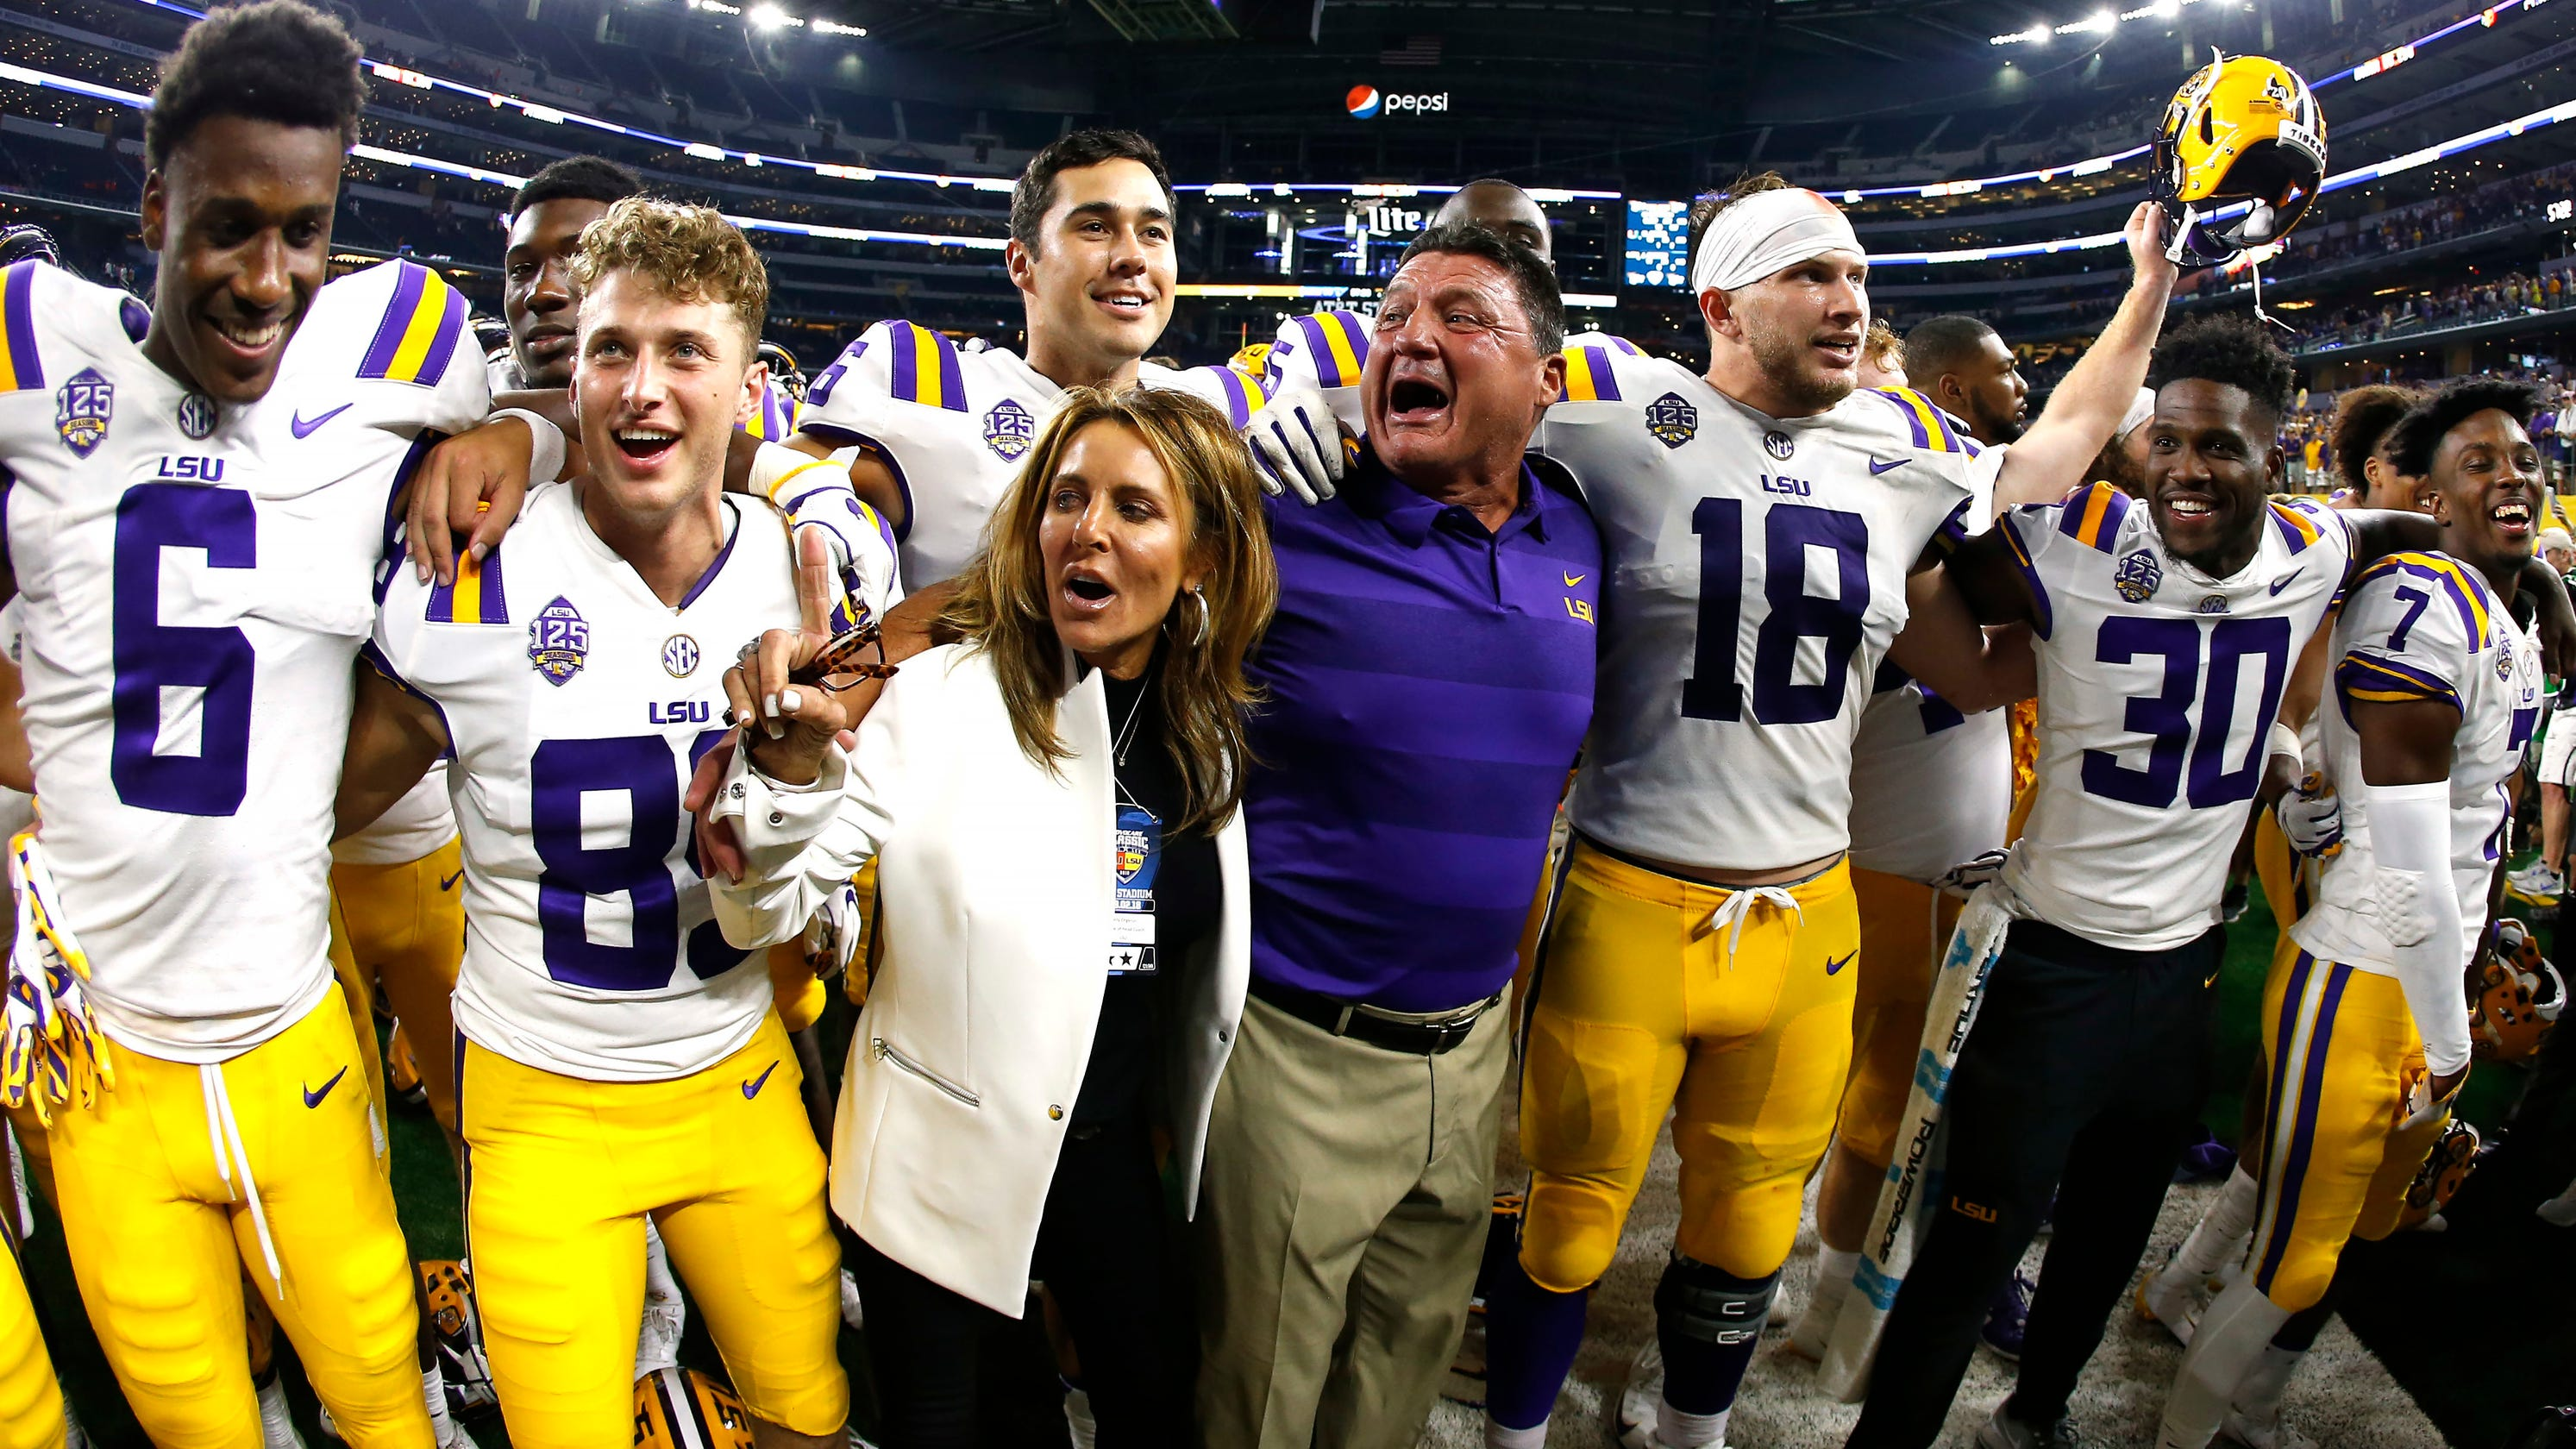 Rice at LSU: How to Watch, Listen and Follow the game